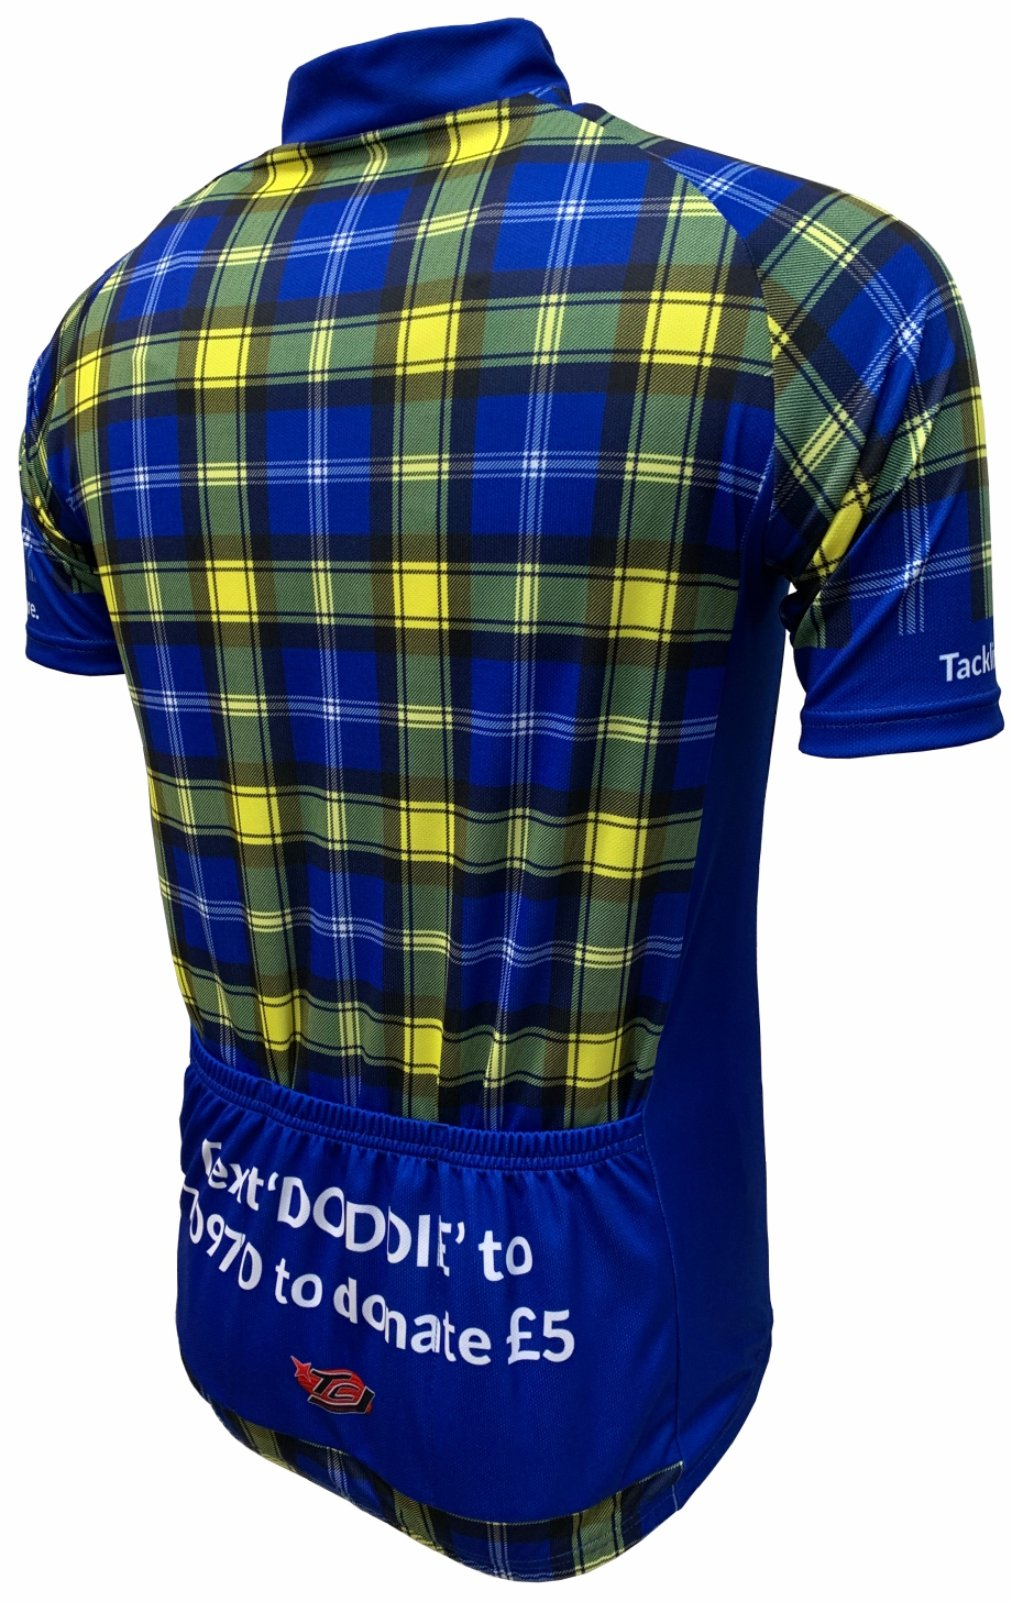 Doddie'5 Tartan Cycling Jersey Back